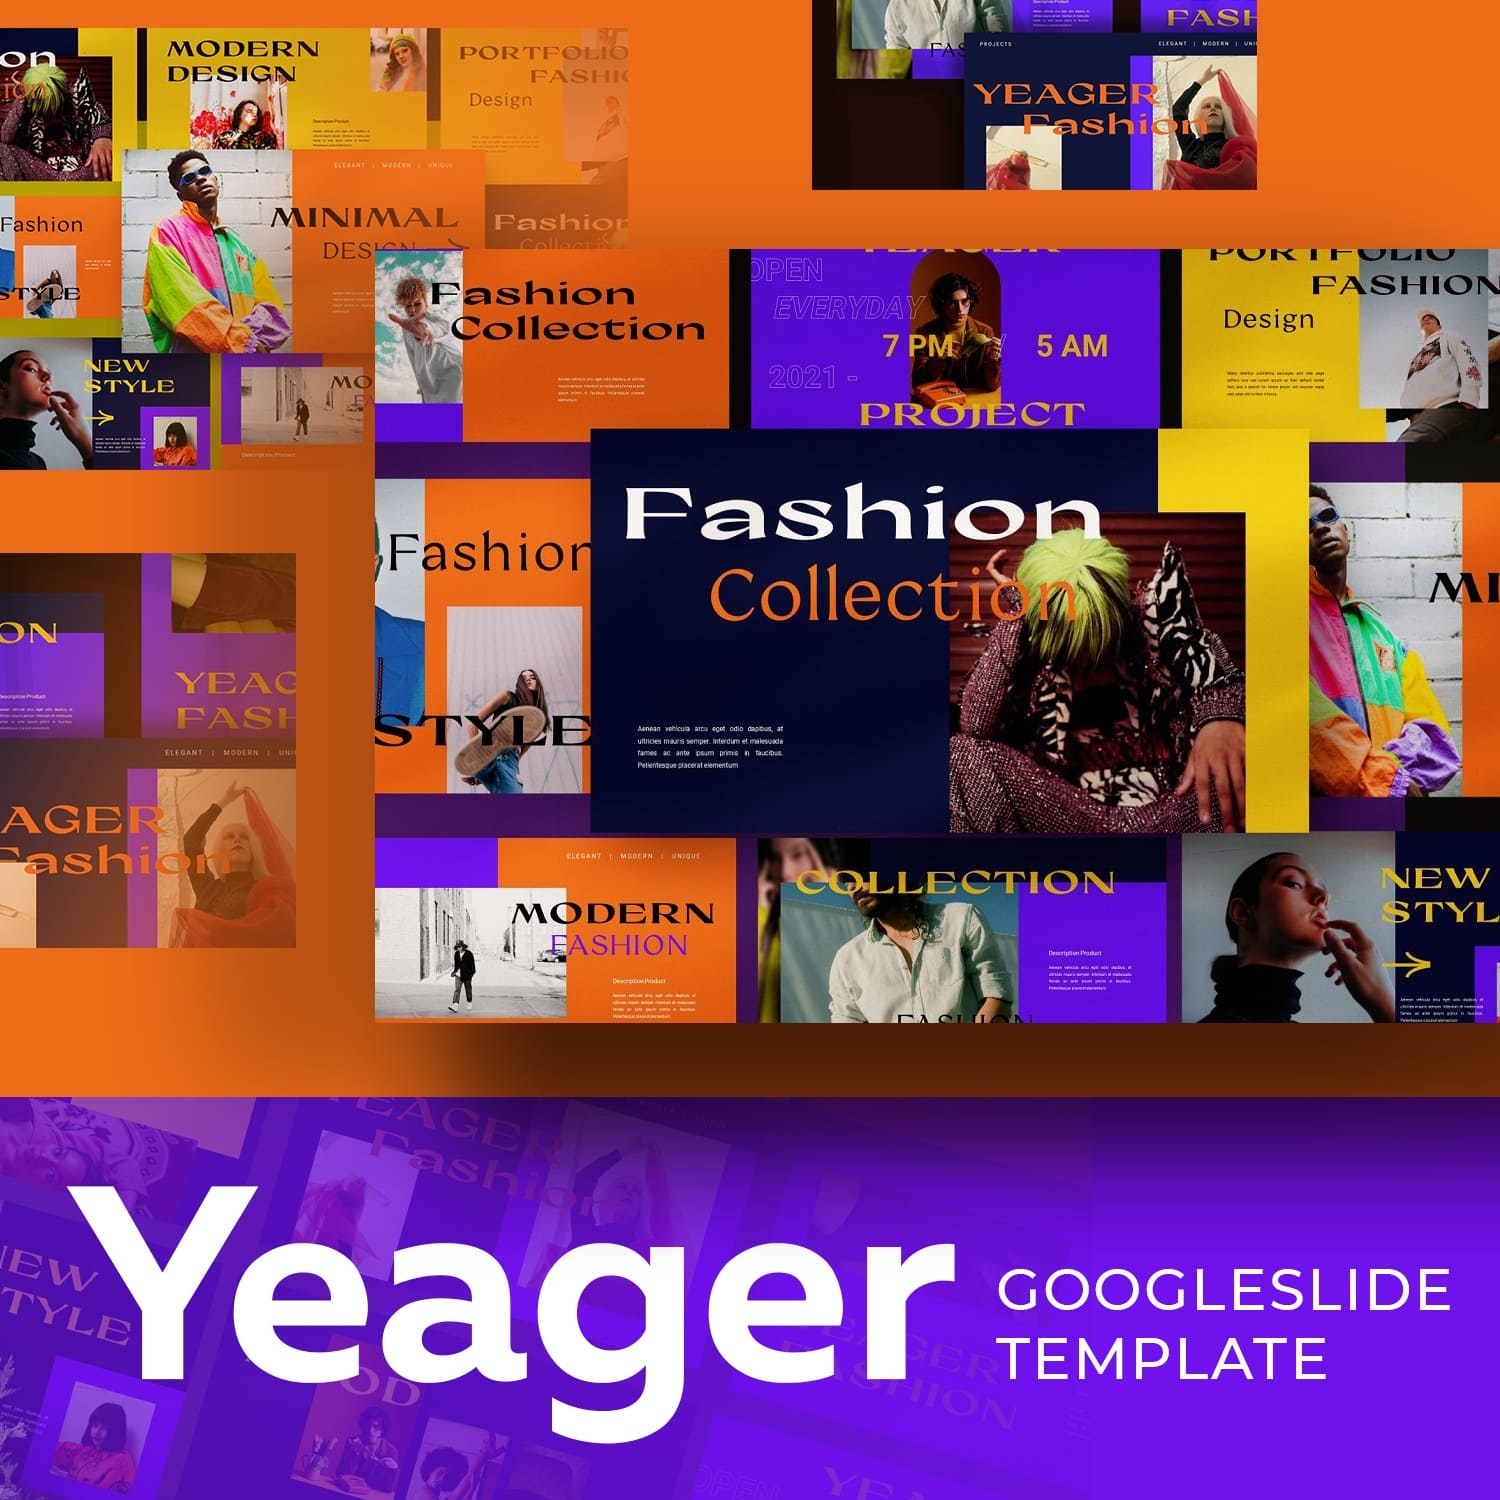 Yeager Googleslide Template main cover.